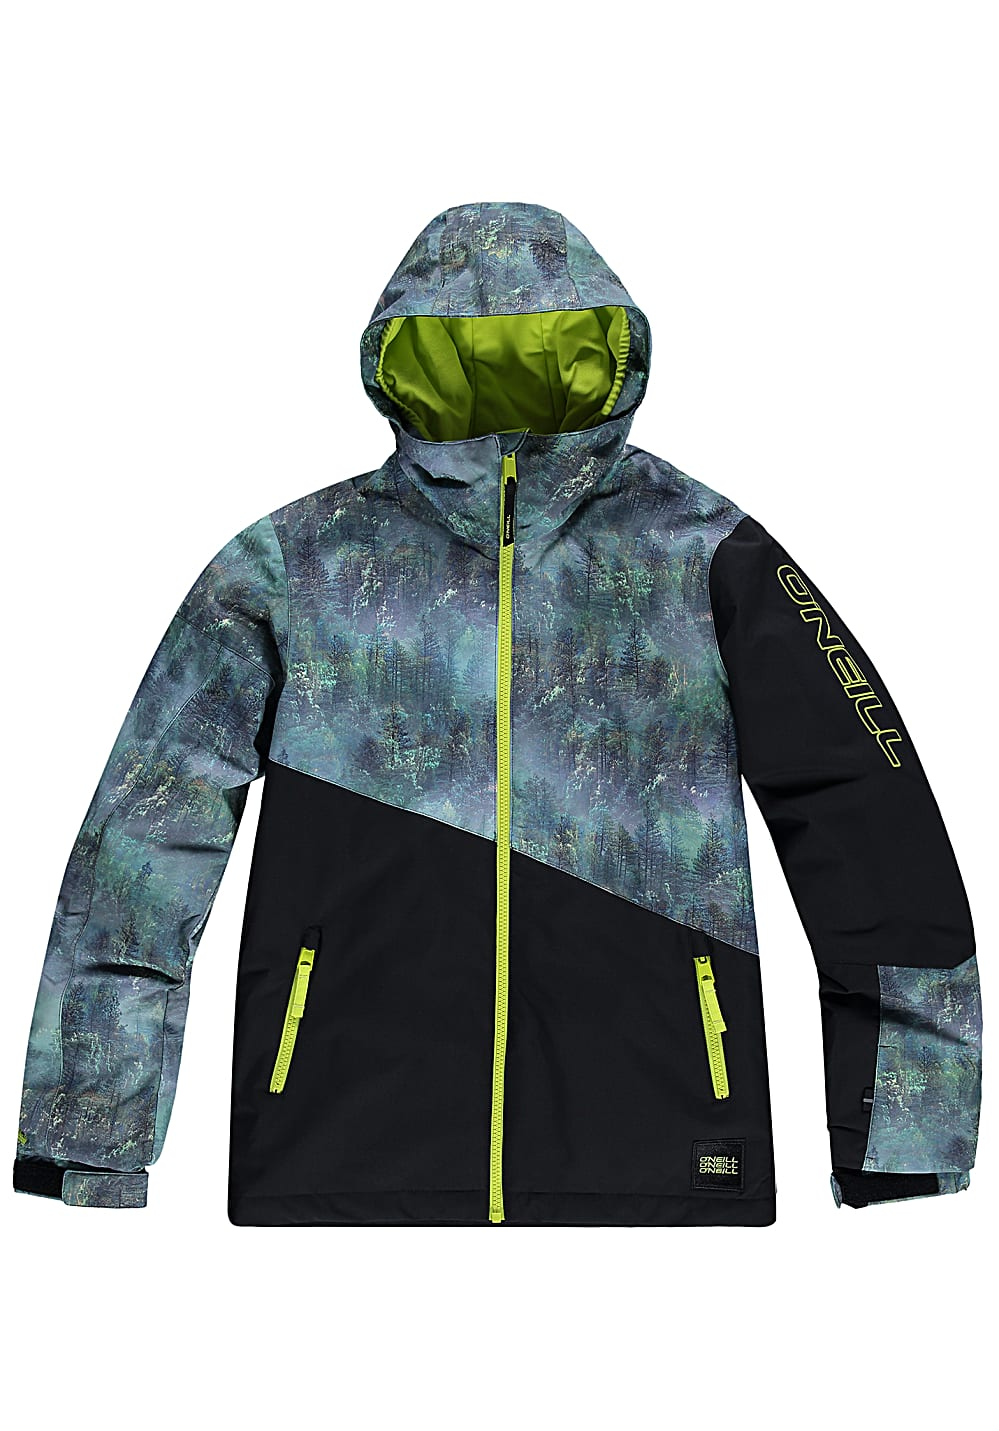 Boysregenwinter - O'Neill Halite Snowboardjacke für Jungs Camouflage - Onlineshop Planet Sports